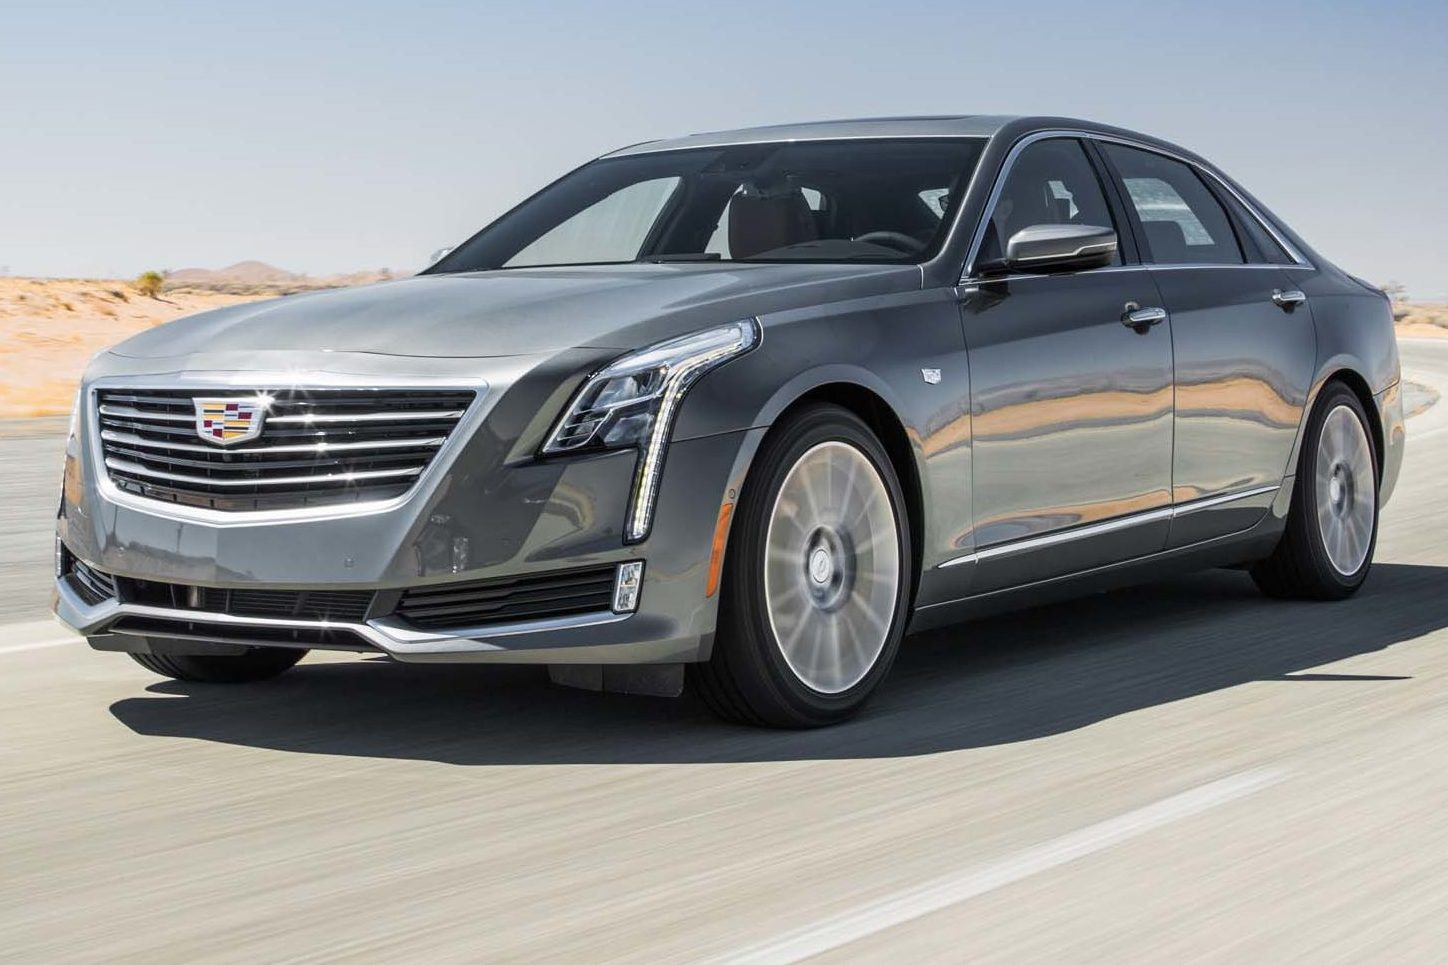 2017 Cadillac CT6 20T Front Three Quarter In Motion E1478276654738